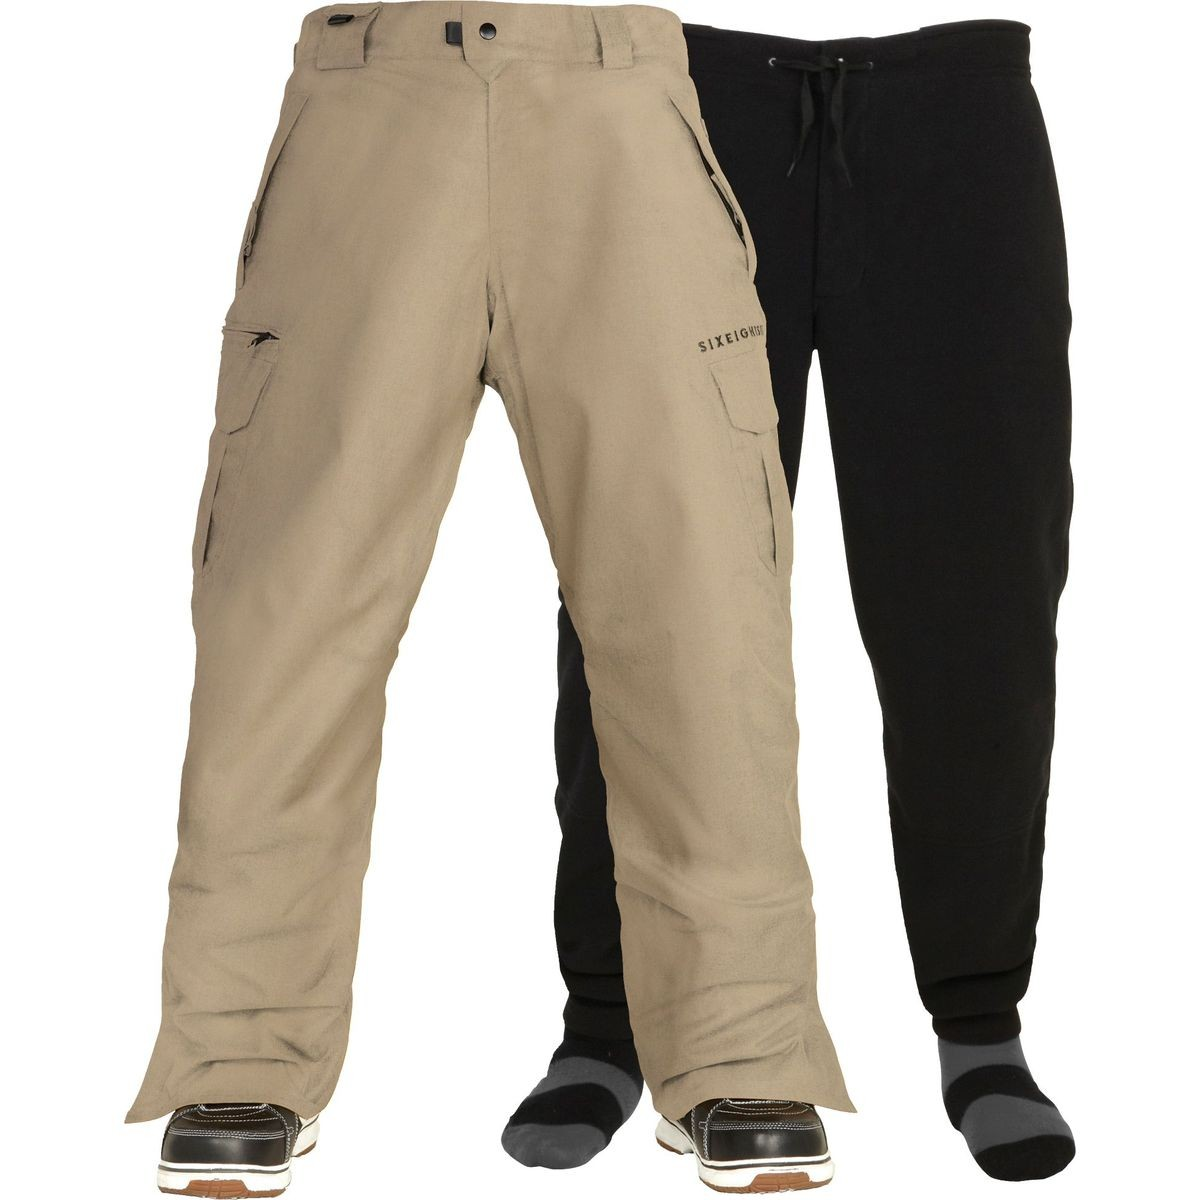 686 Authentic Smarty Cargo Snowboard Pants